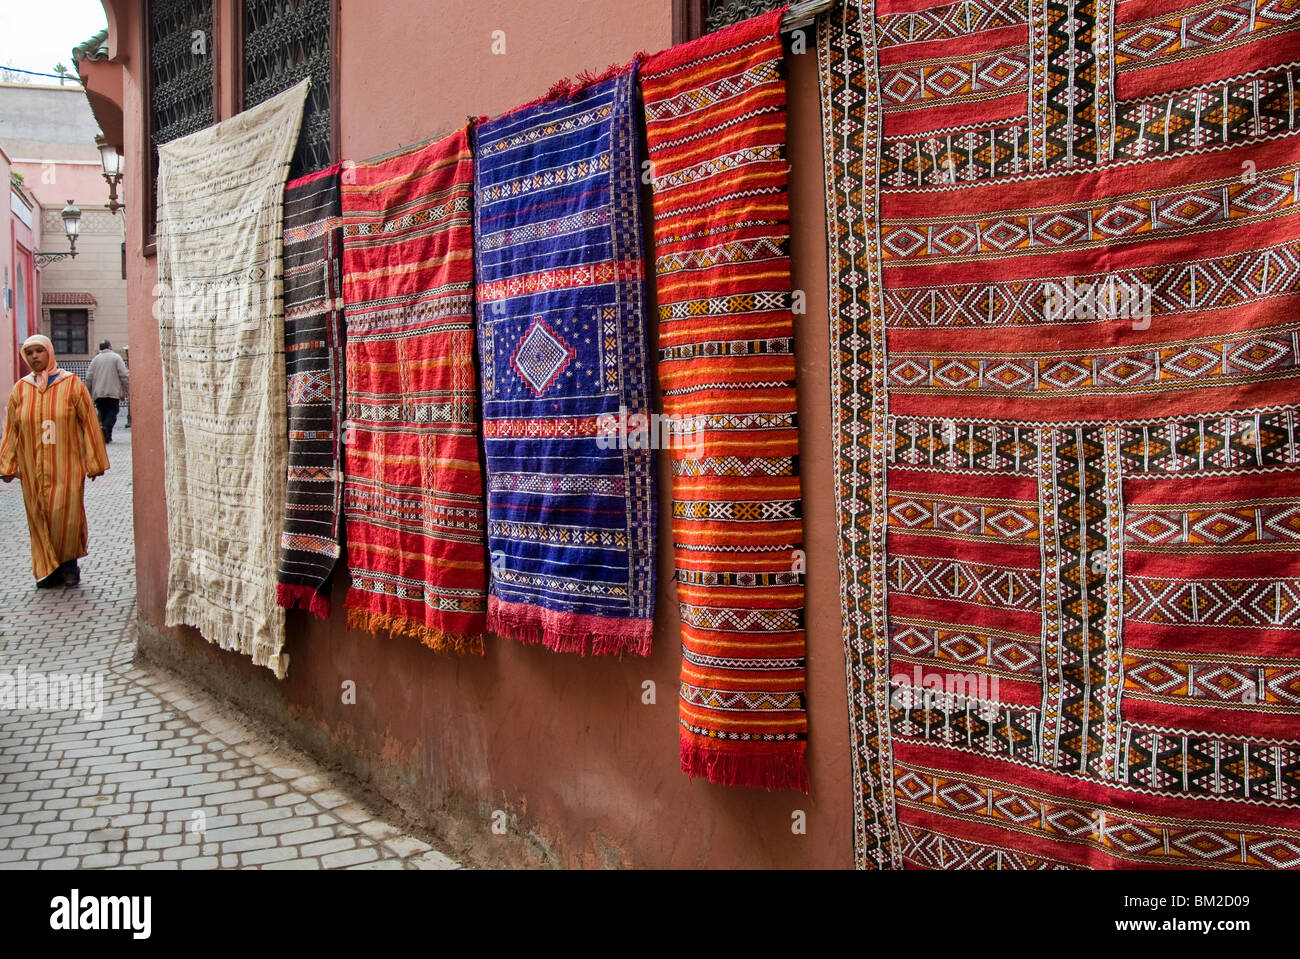 Carpets for sale in the souk, Marrakech (Marrakesh), Morocco - Stock Image